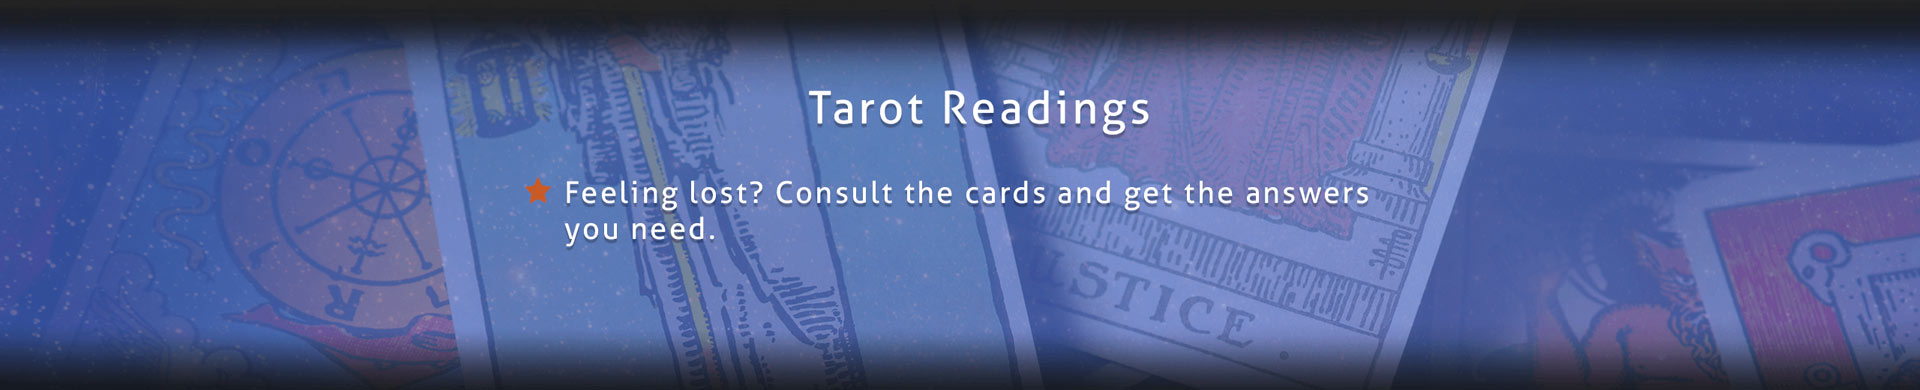 Feeling lost? Consult the cards and get the answers you need.